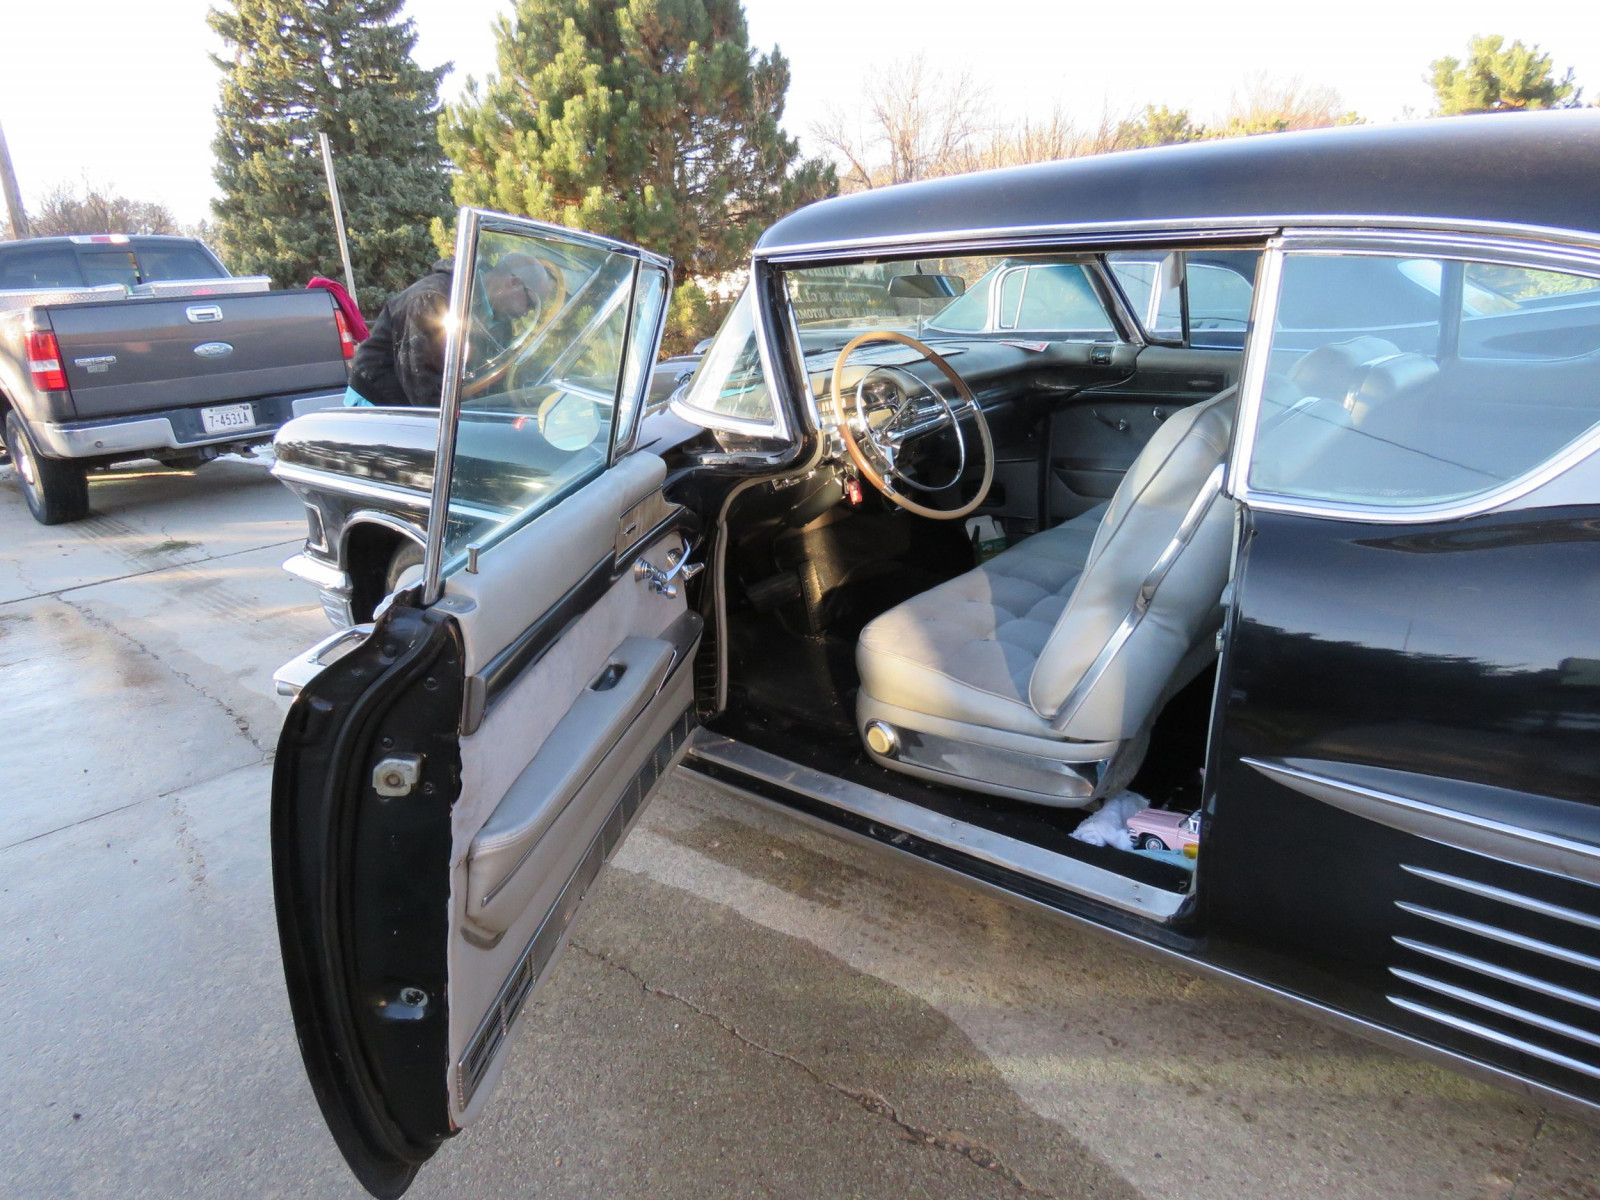 1958 Cadillac Coupe DeVille - Image 7